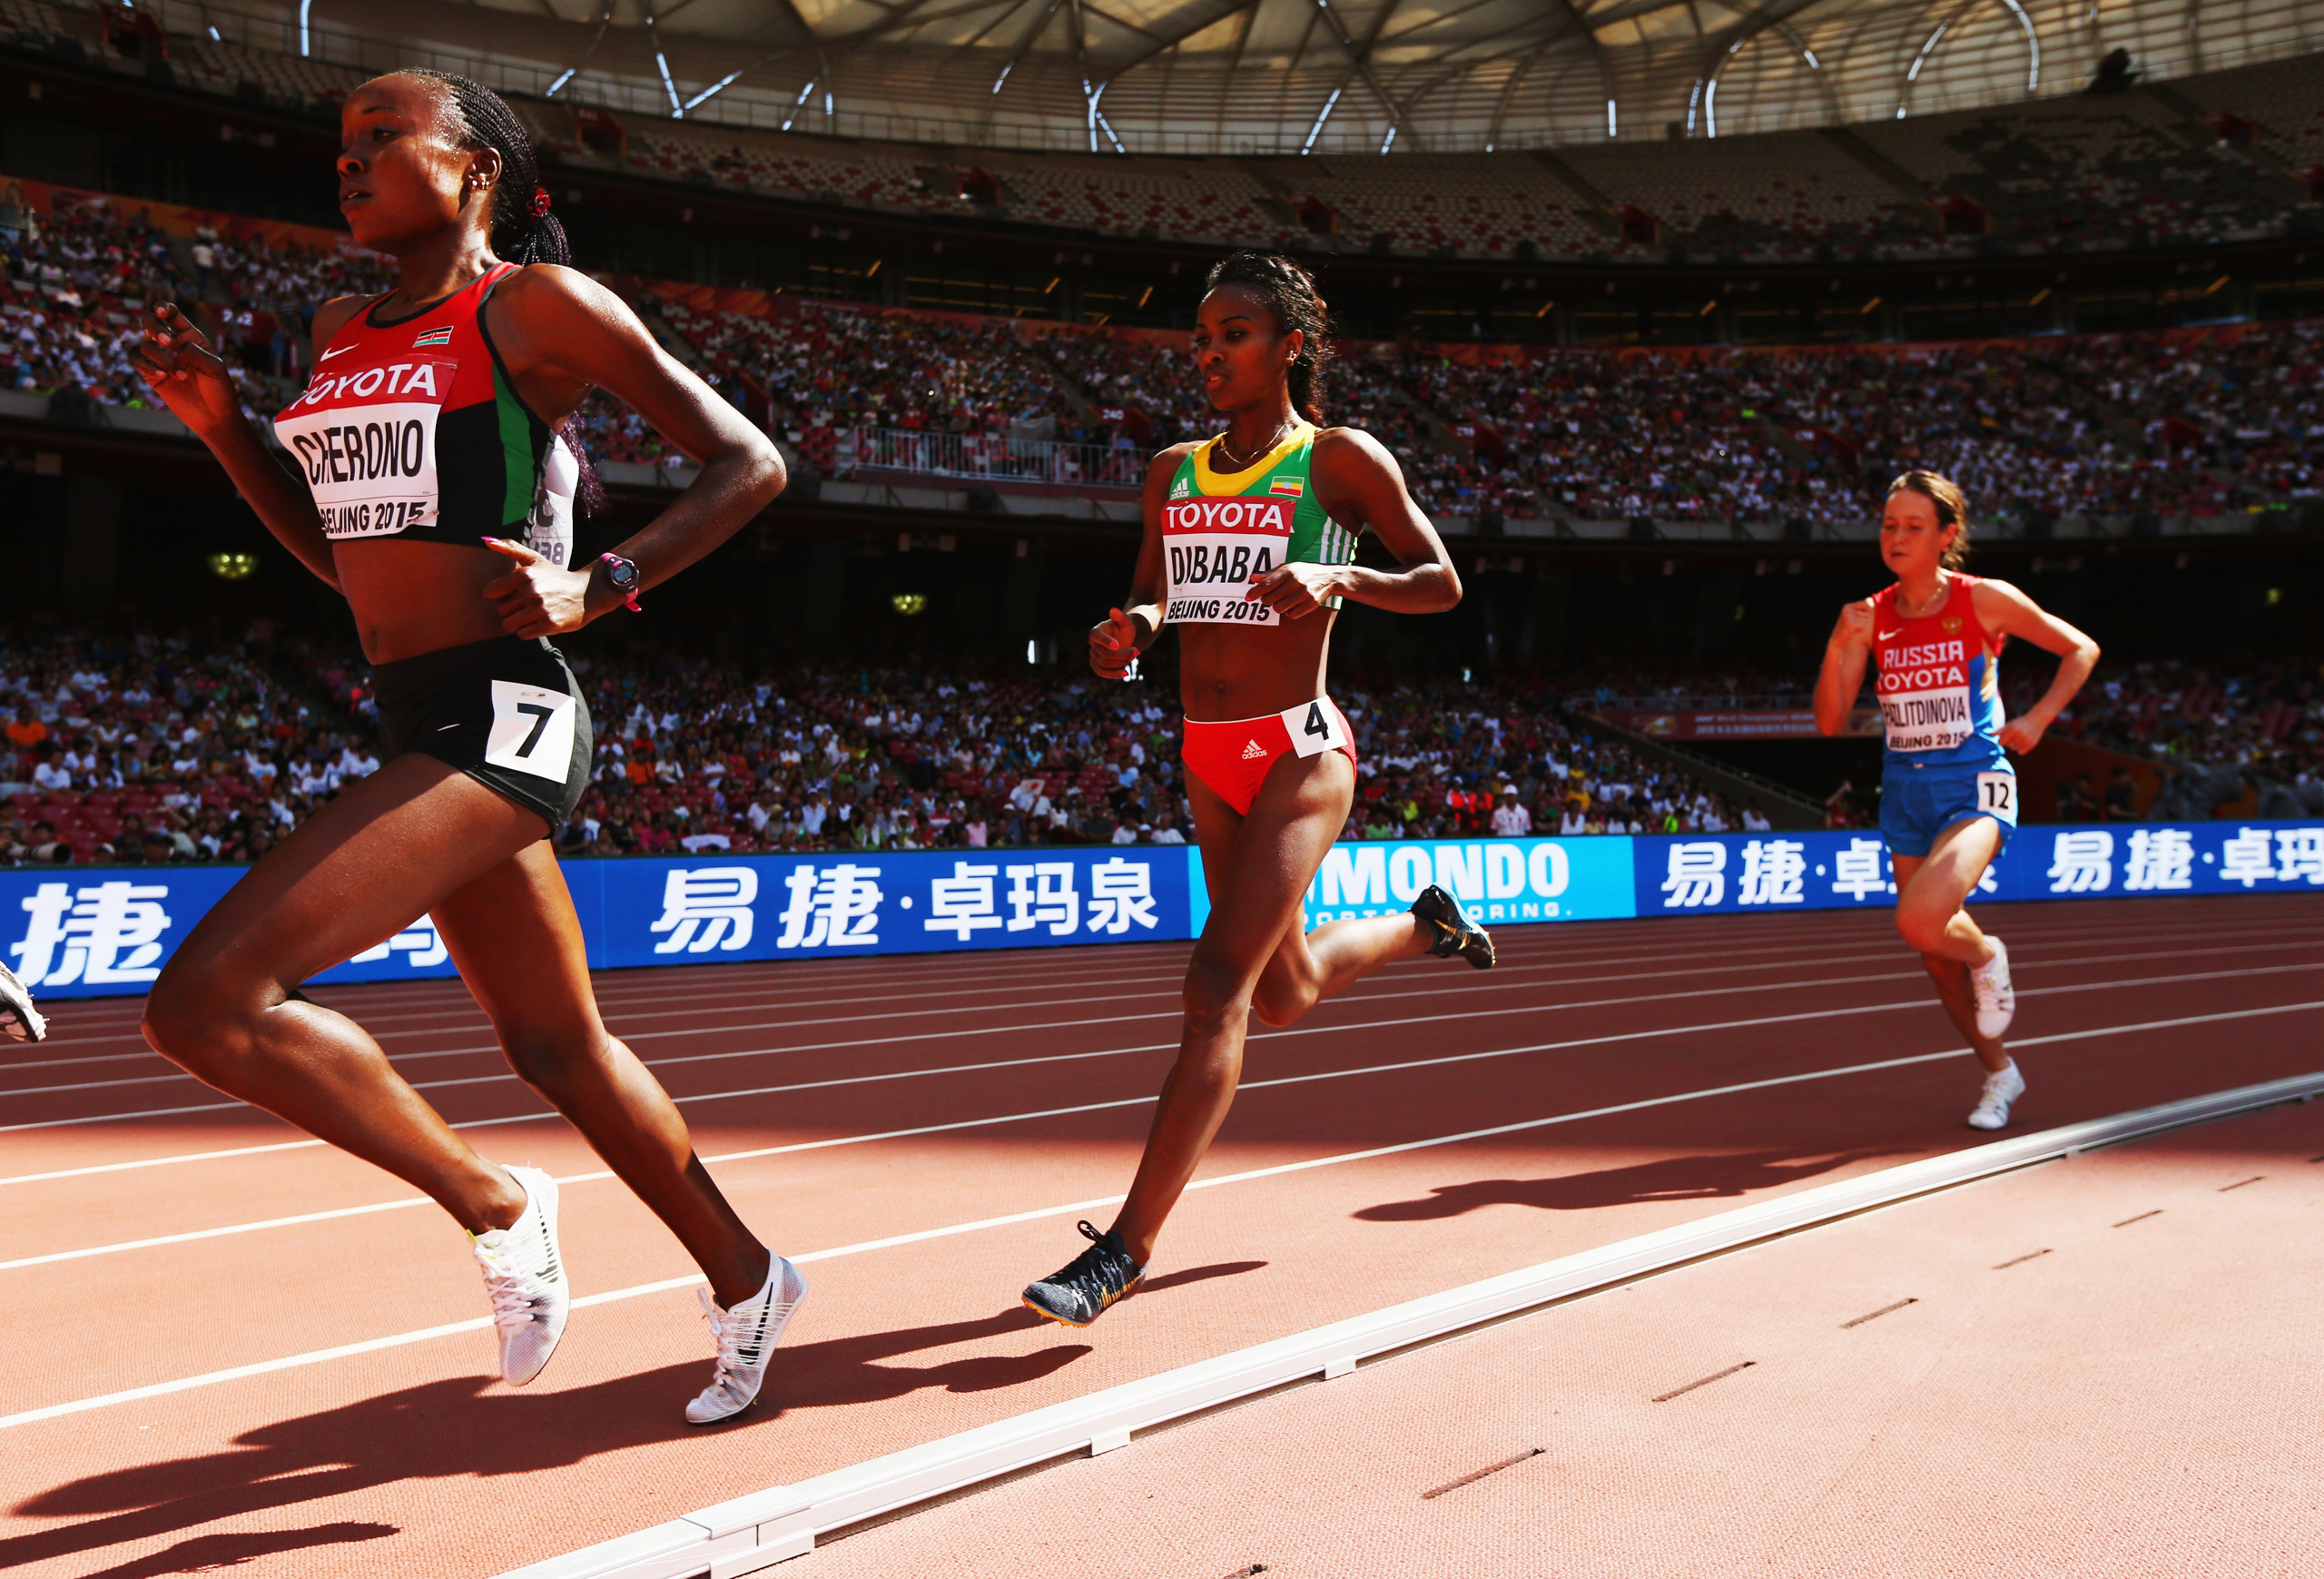 <strong>Genzebe Dibaba, Track and Field, Ethiopia</strong>The 2015 track athlete of the year set a world record in the 1,500 m and is the heavy Olympic favorite. But is she too good to be true? In June, her coach was arrested in a doping raid.